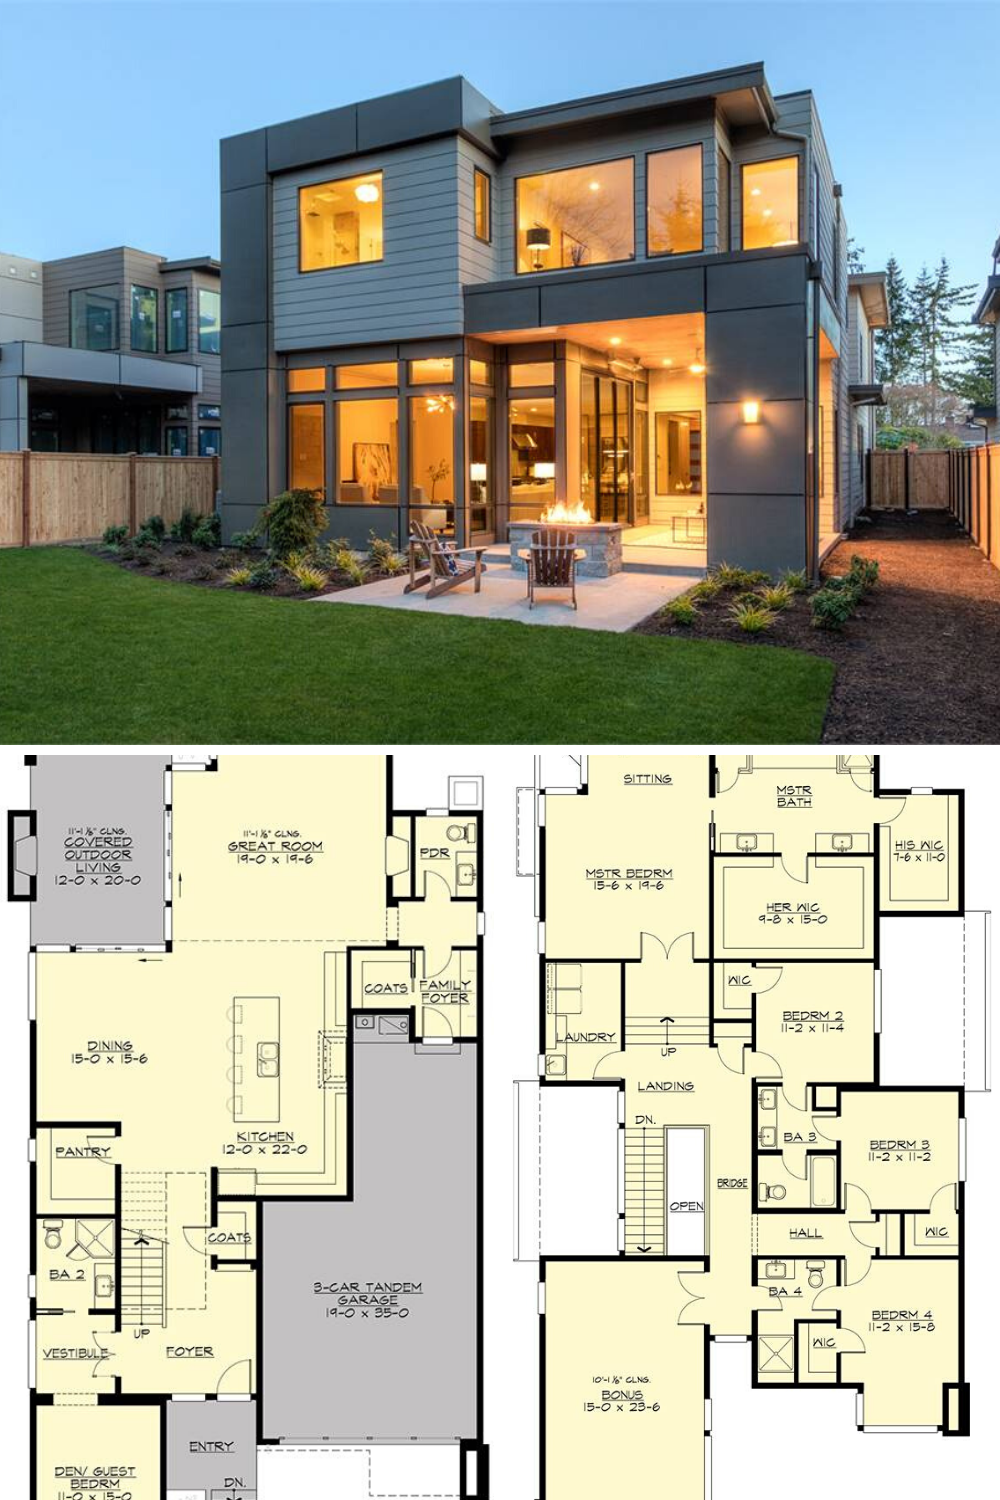 Two Story 4 Bedroom Sunoria Contemporary Style Home Floor Plan Modern Exterior House Designs Best Modern House Design Modern Architecture House